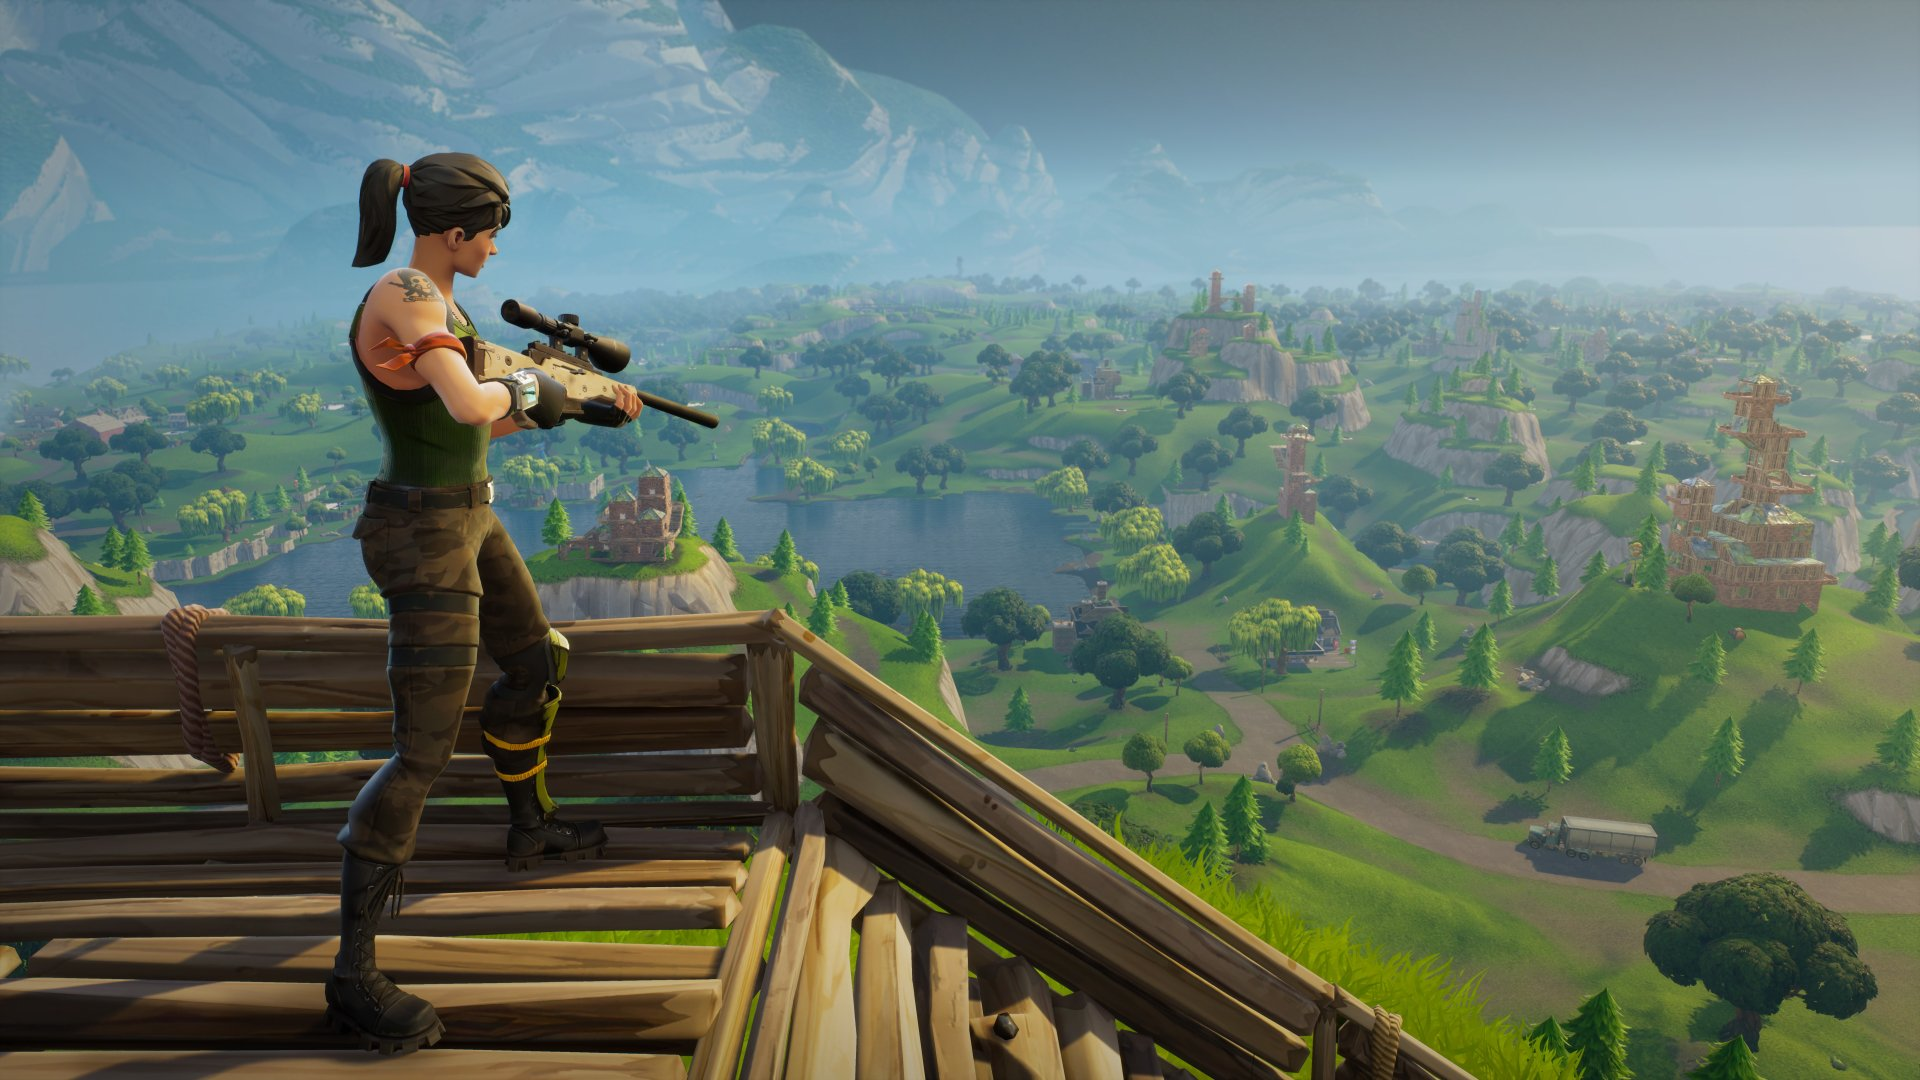 download Fortnite game wallpapers